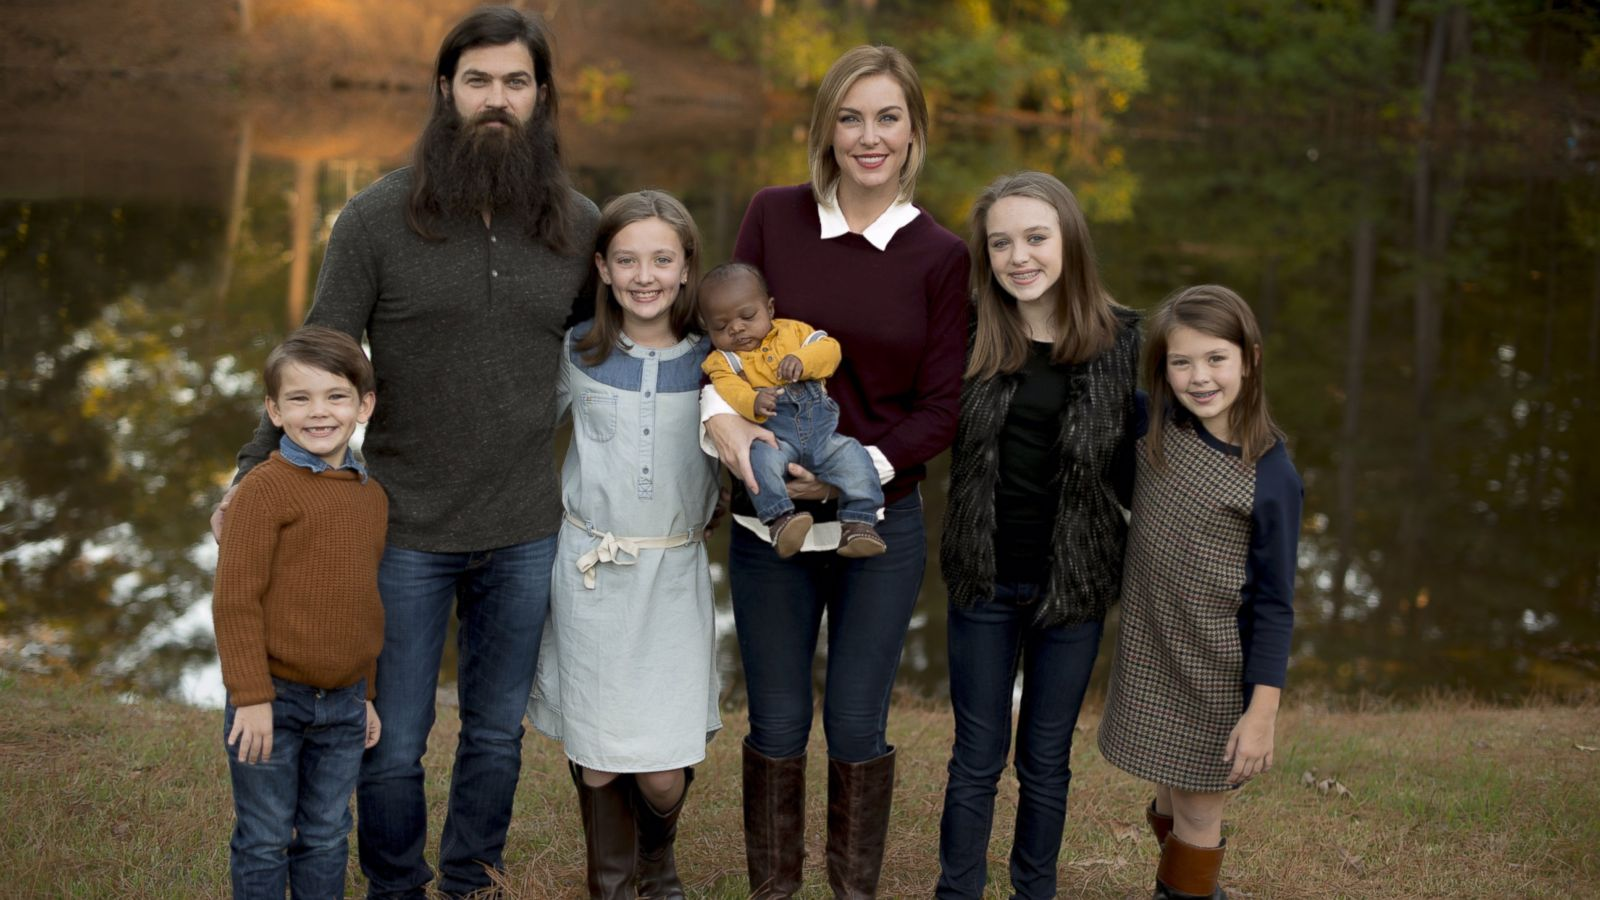 A family picture of Jep and Jessica. Their five children are present and they are standing in front of a lake